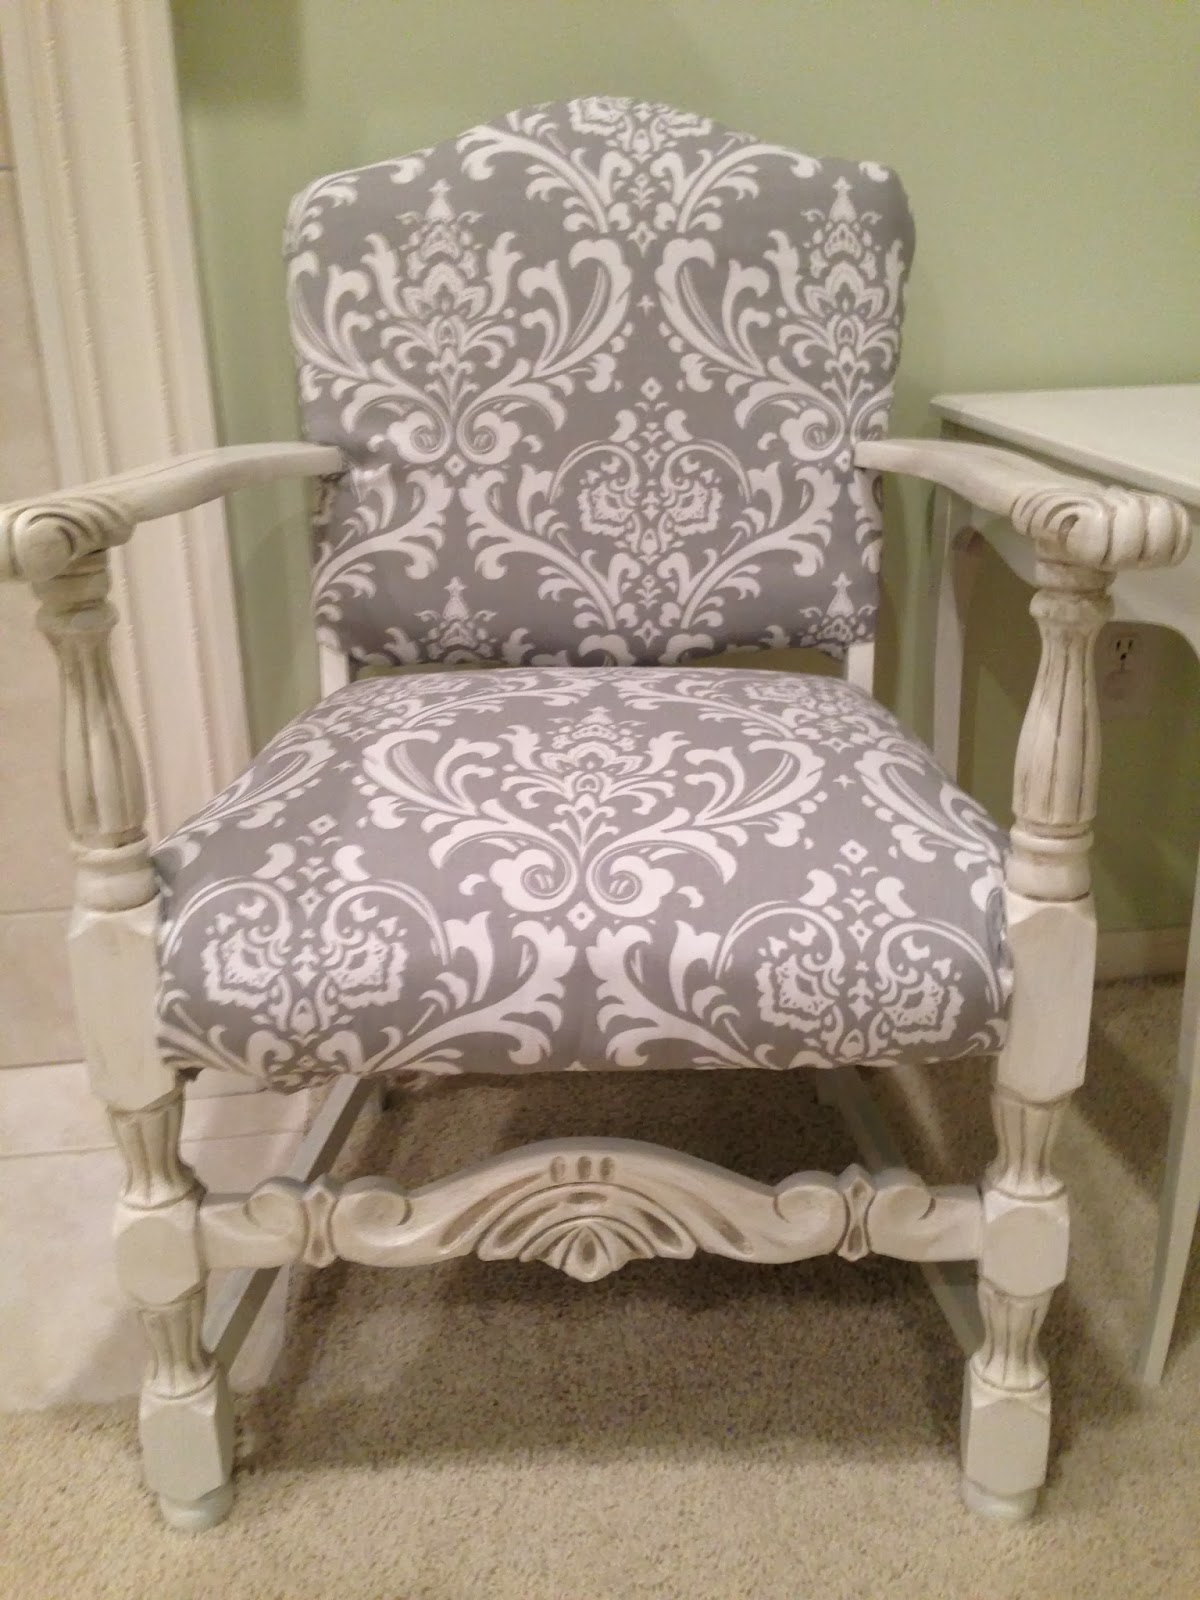 Grey Upholstered Chair Link Party 128 Refurbished Furniture Link Party And Features